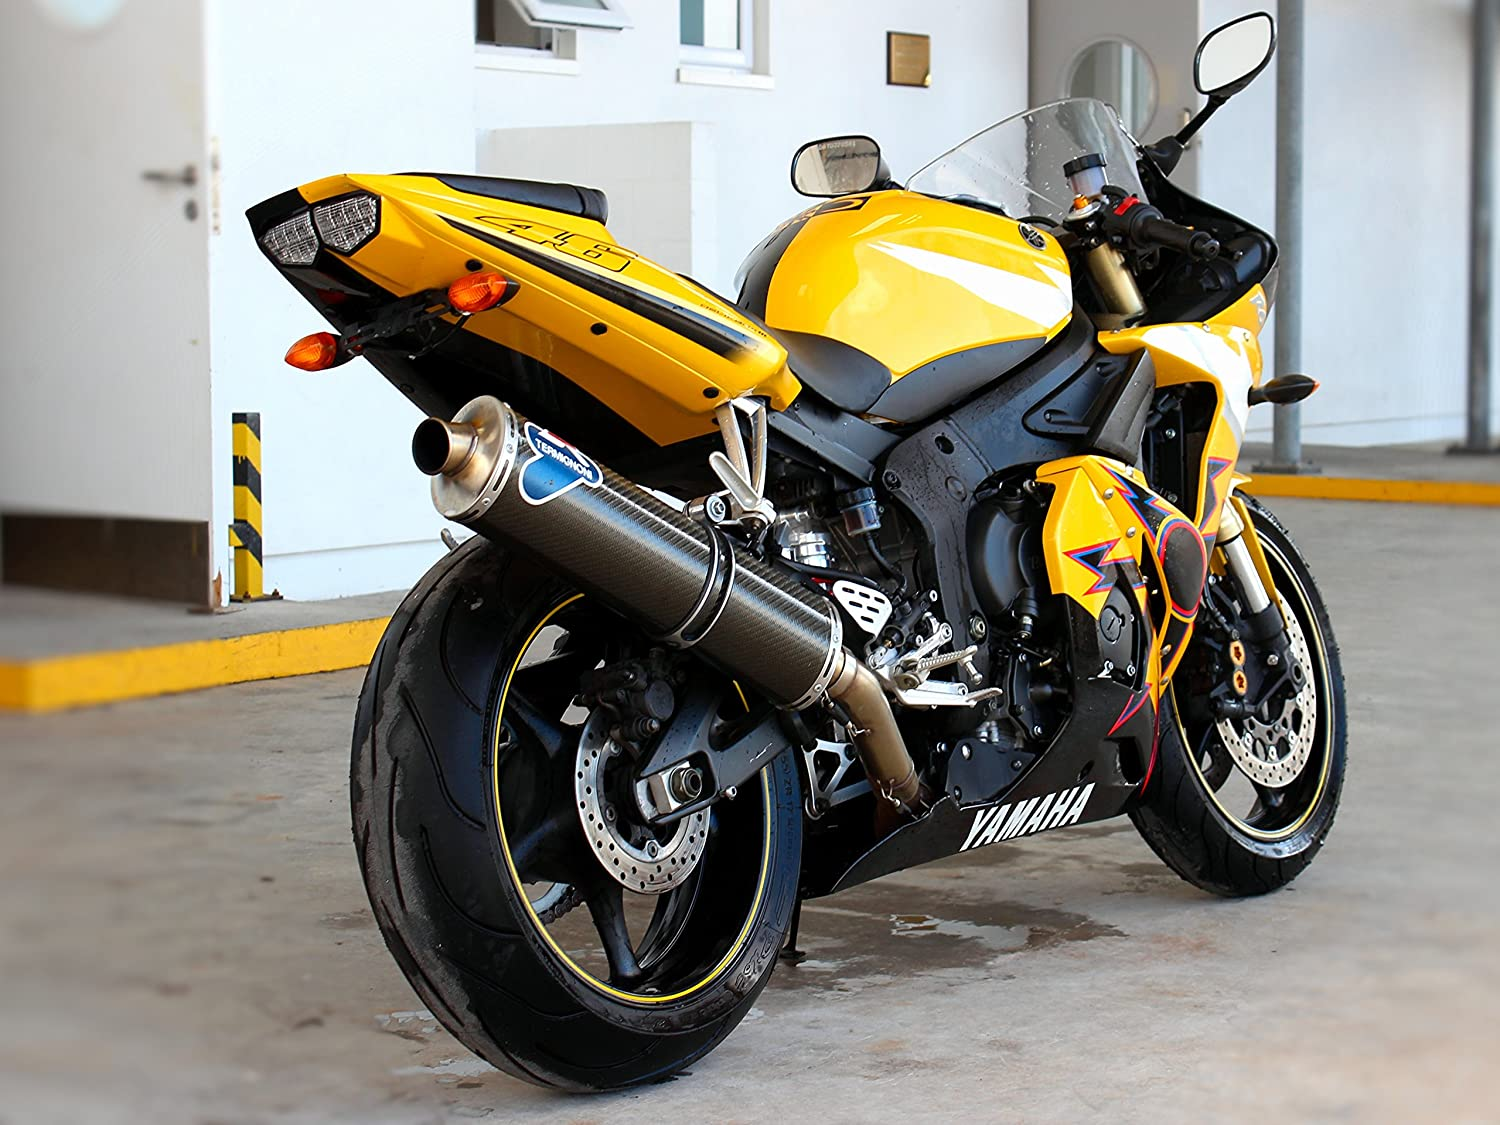 Fender Eliminator//Tail Tidy for the 1st 2nd generation Yamaha YZF-R6